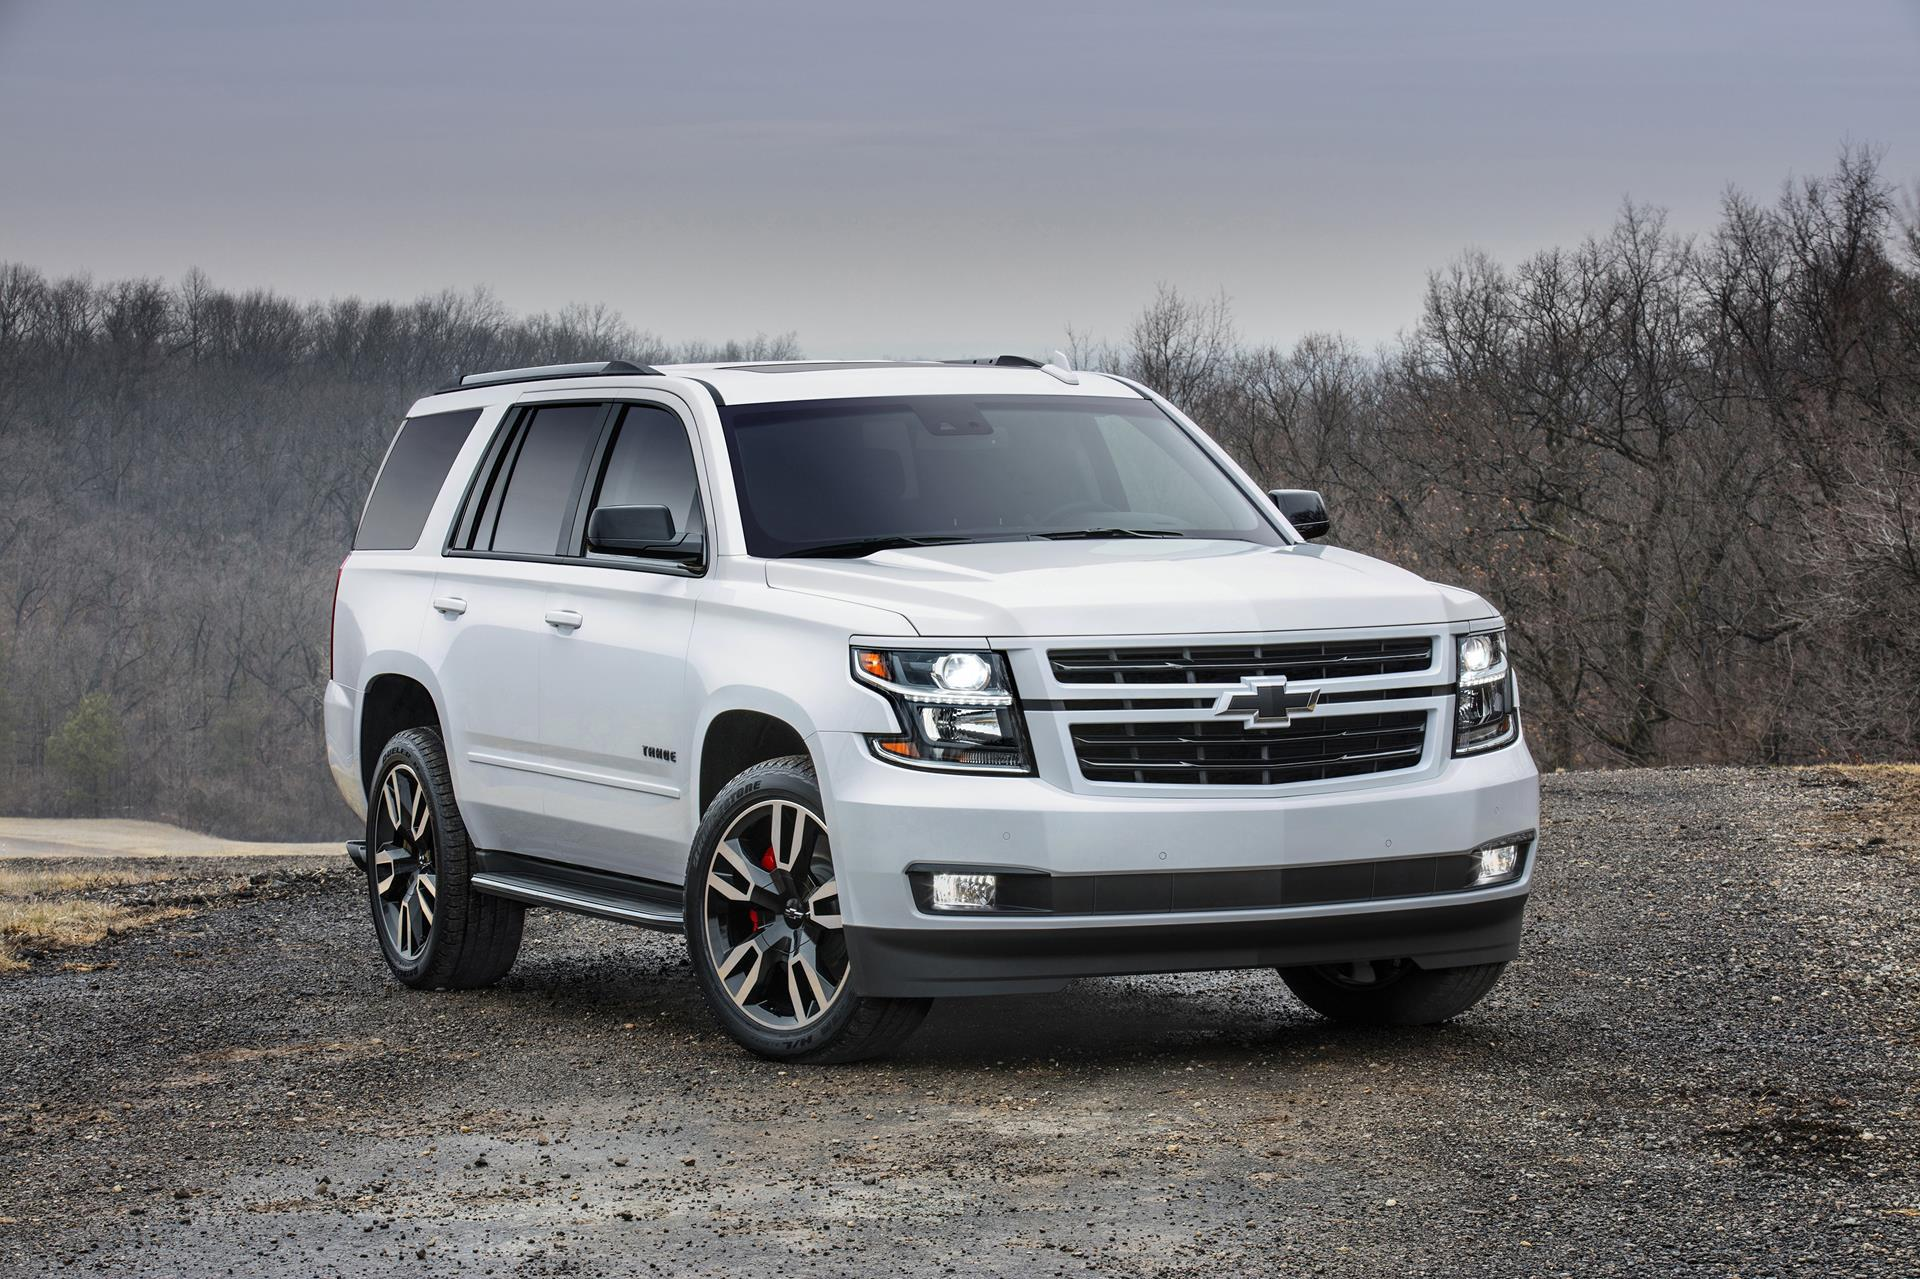 Cars By Chevrolet Images Wallpaper Pricing And Information 1961 Chevy Panel Van Tahoe Rst